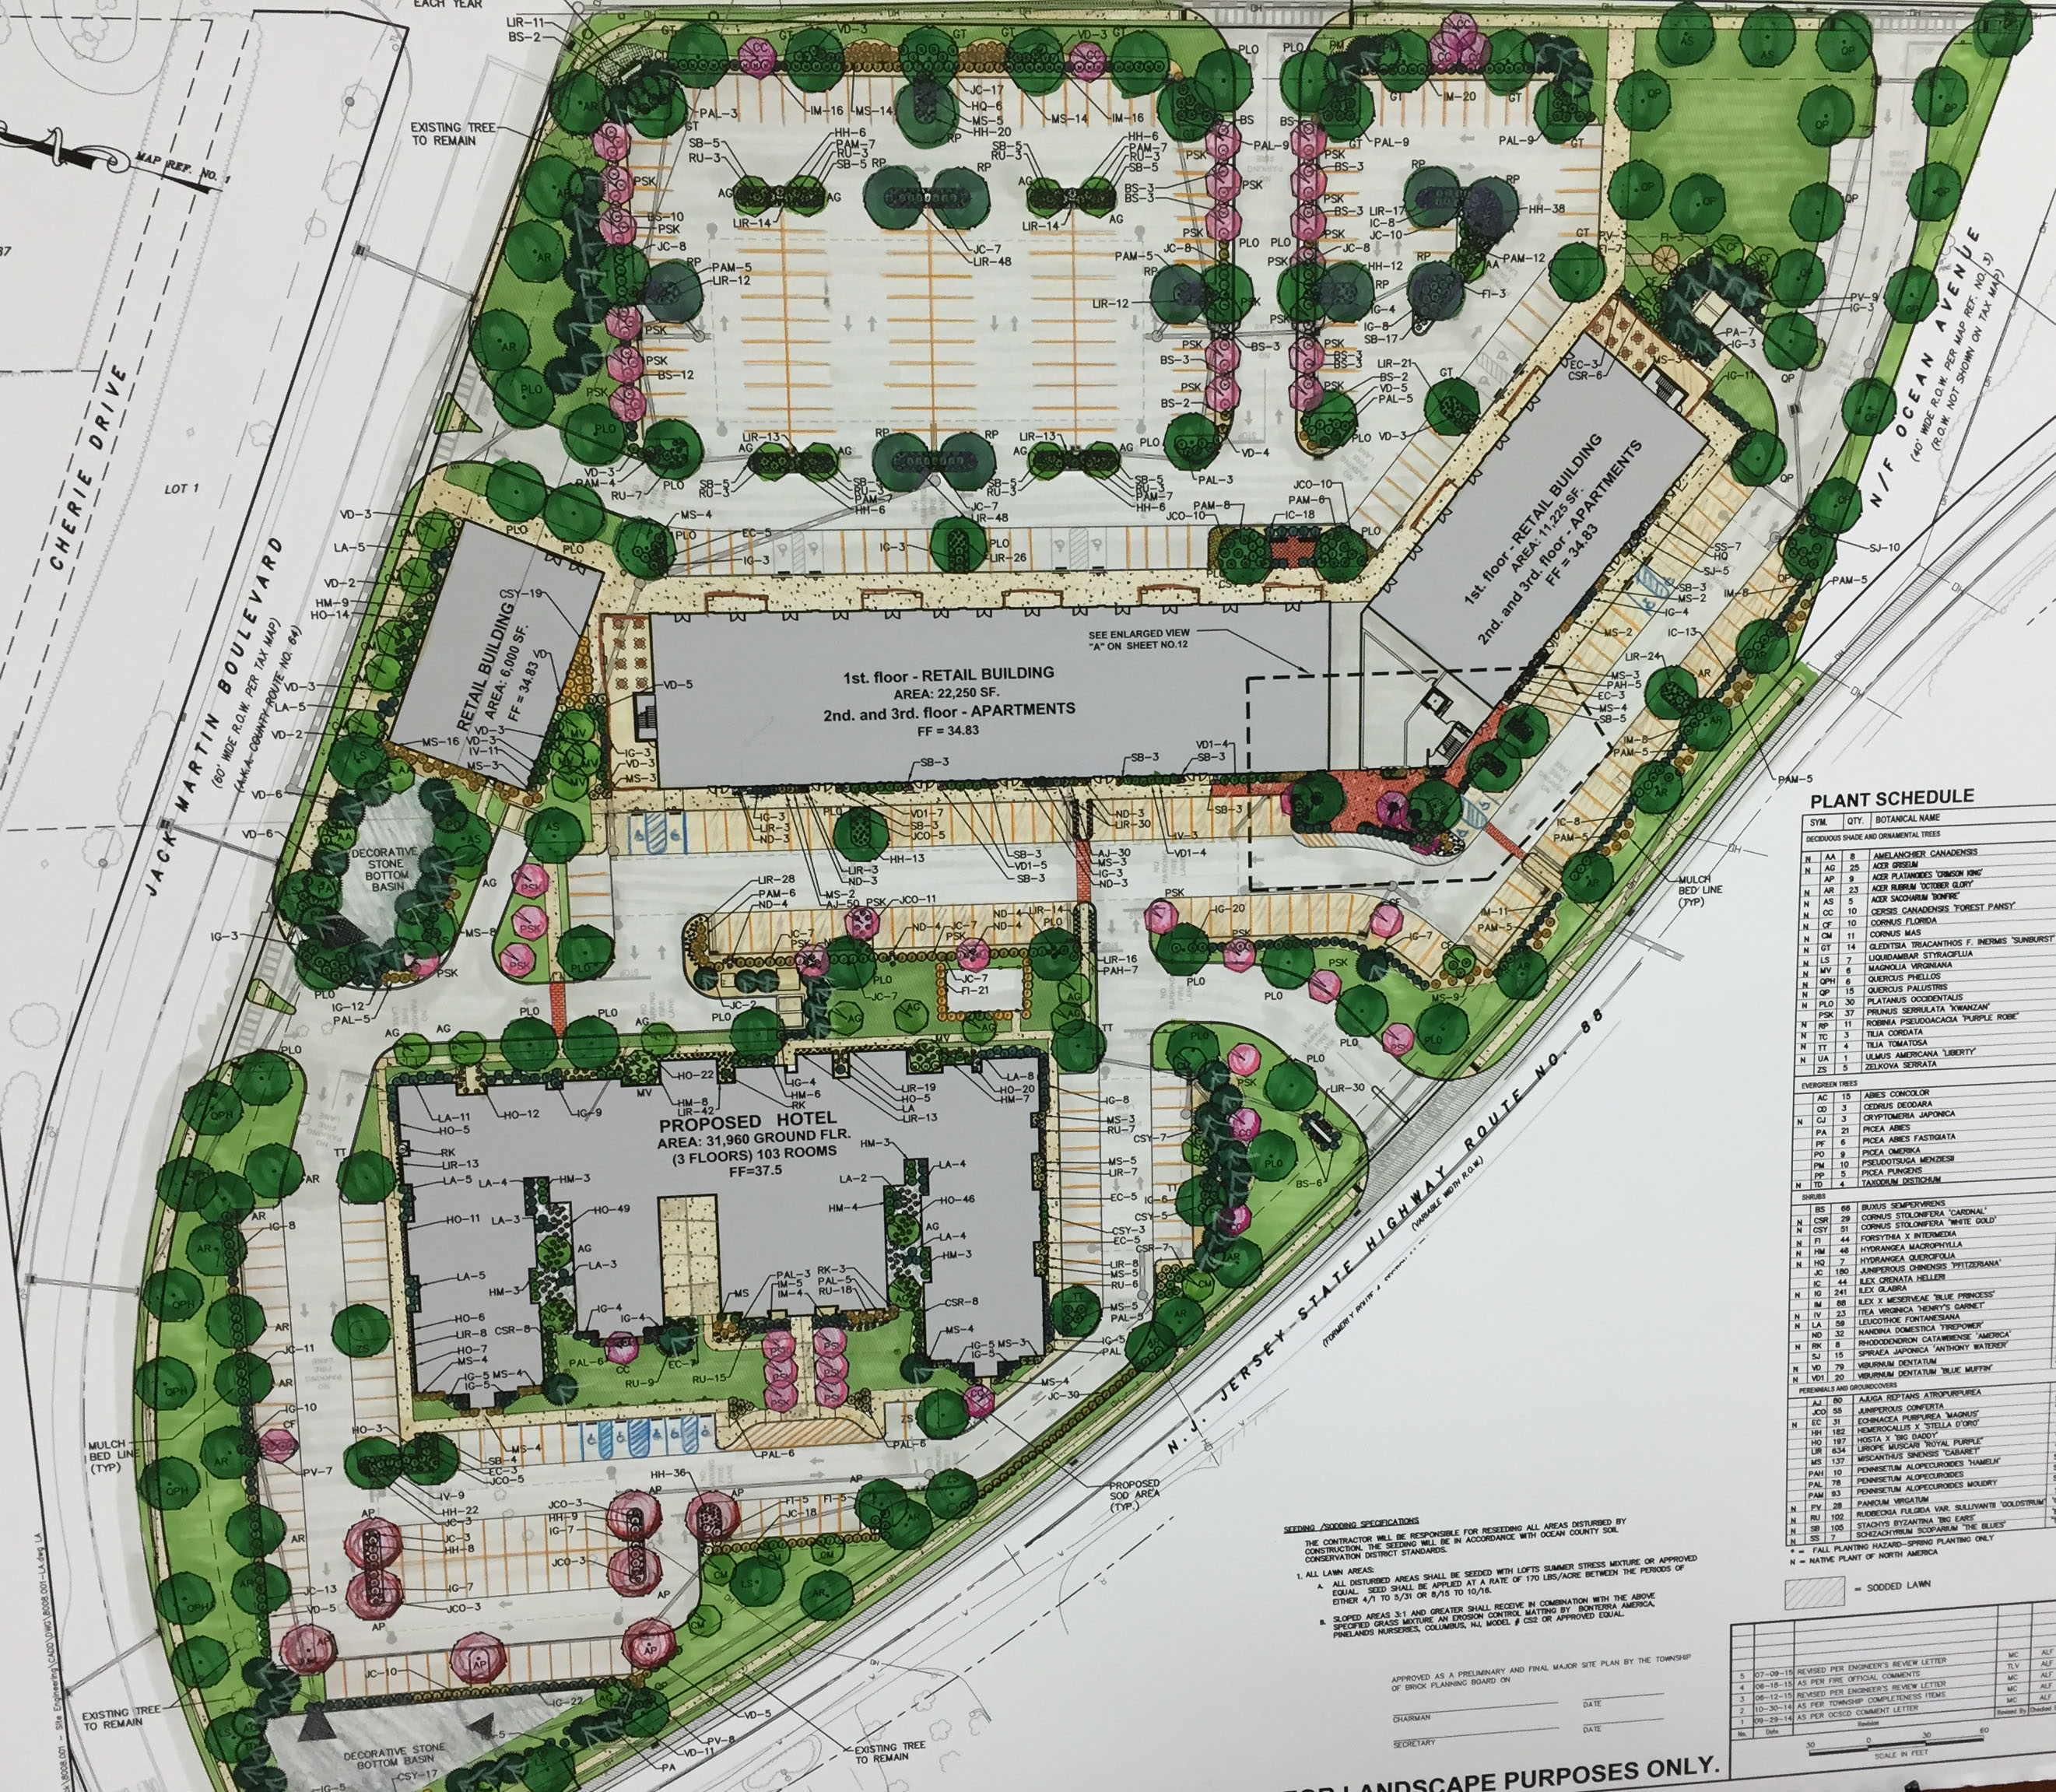 A proposed hotel, apartment and retail complex in Brick, N.J. (Photo: Daniel Nee)